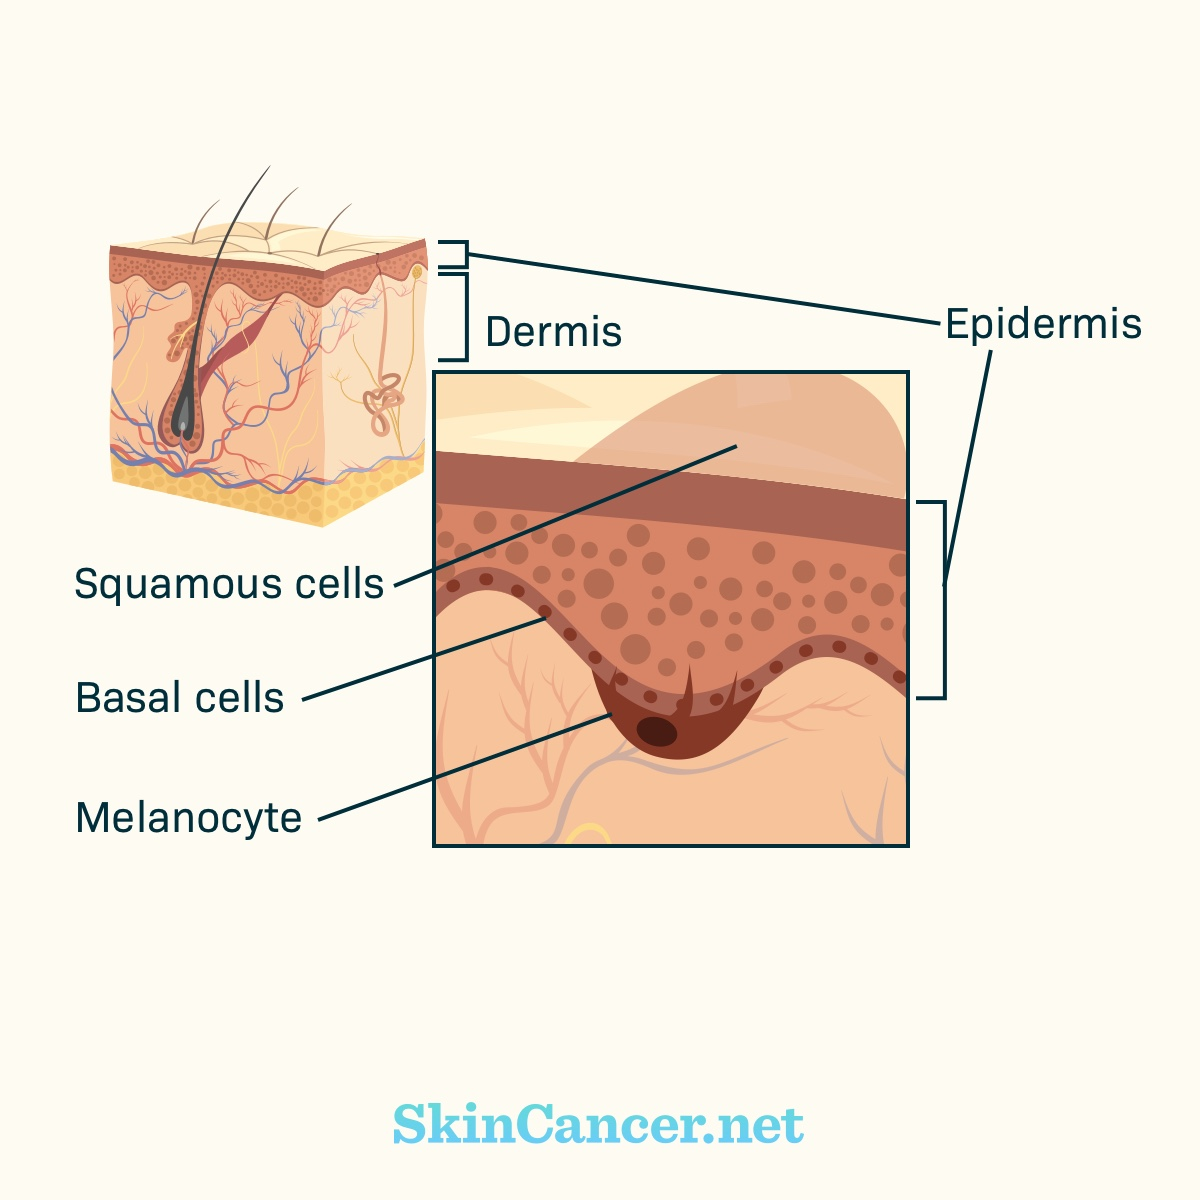 hight resolution of how does skin cancer develop skincancer net muliplying skin cancer diagrams layers of skin